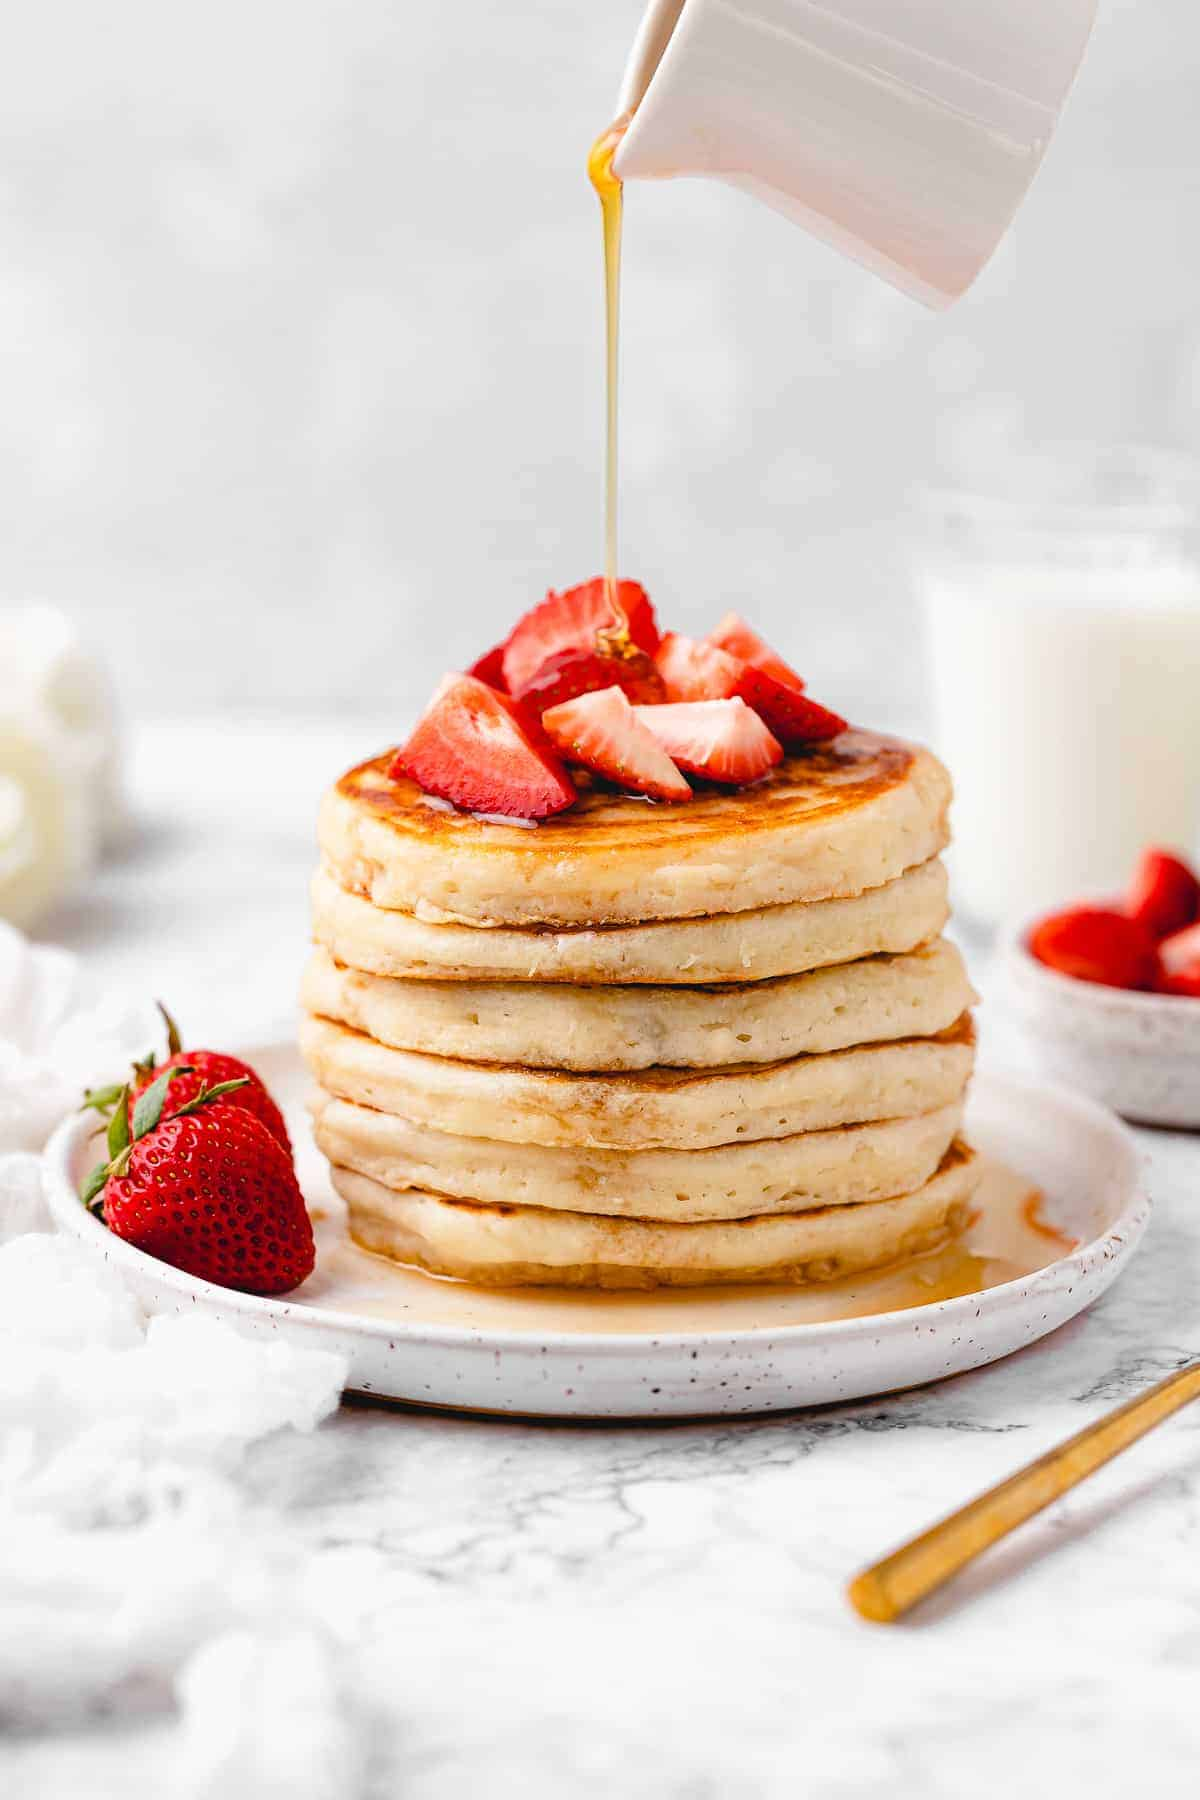 Stack of pancakes topped with strawberries.